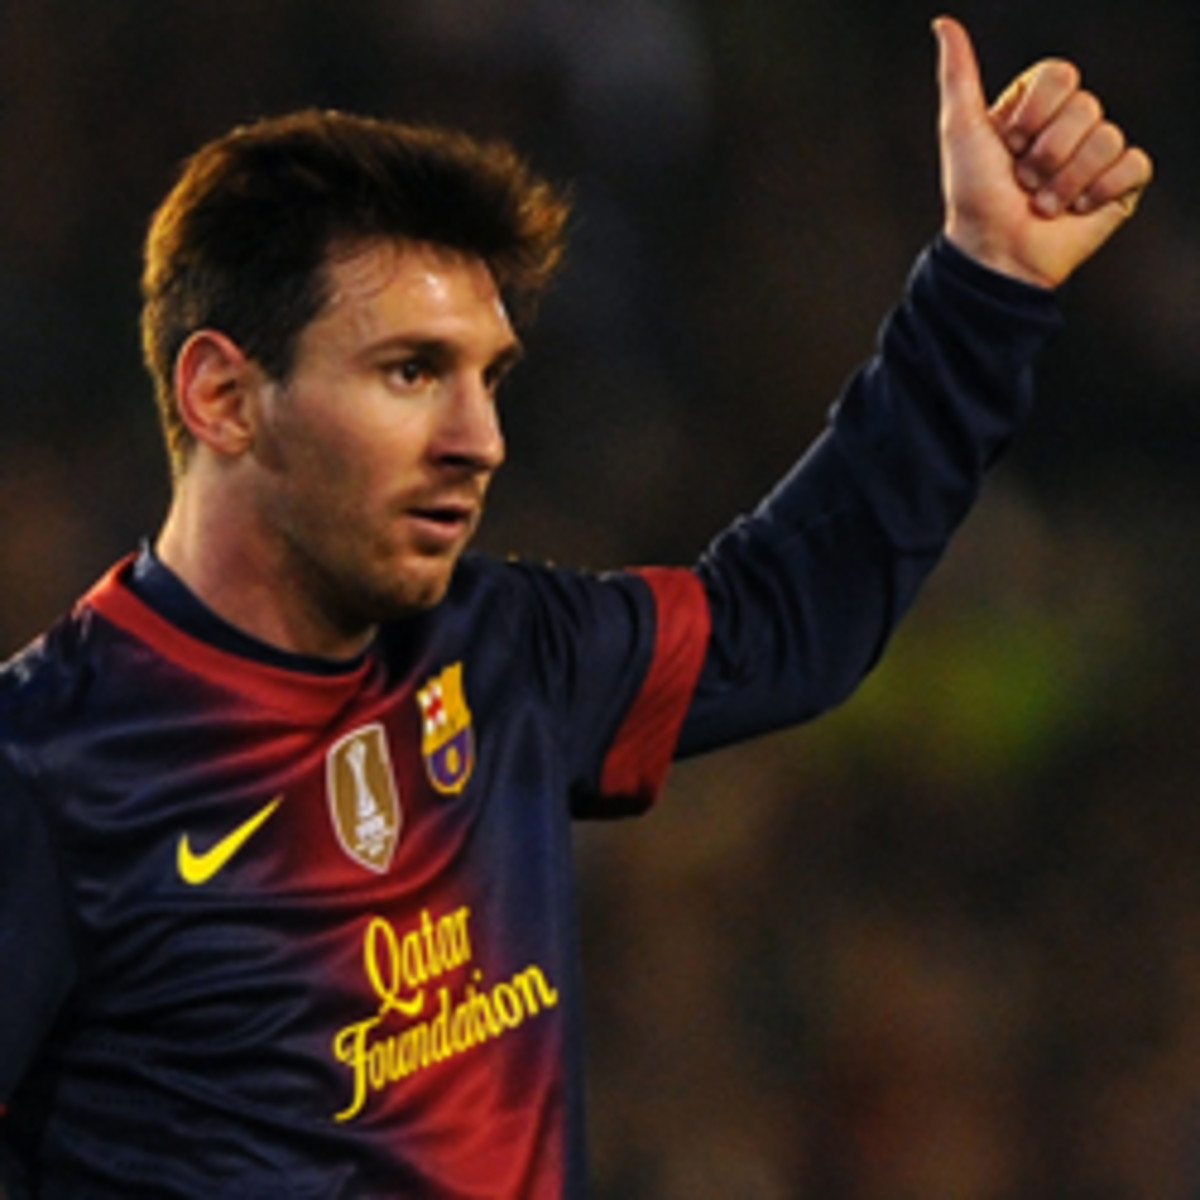 Lionel Messi has turned a record-breaking year into a new FC Barcelona contract. (JORGE GUERRERO/Getty Images)